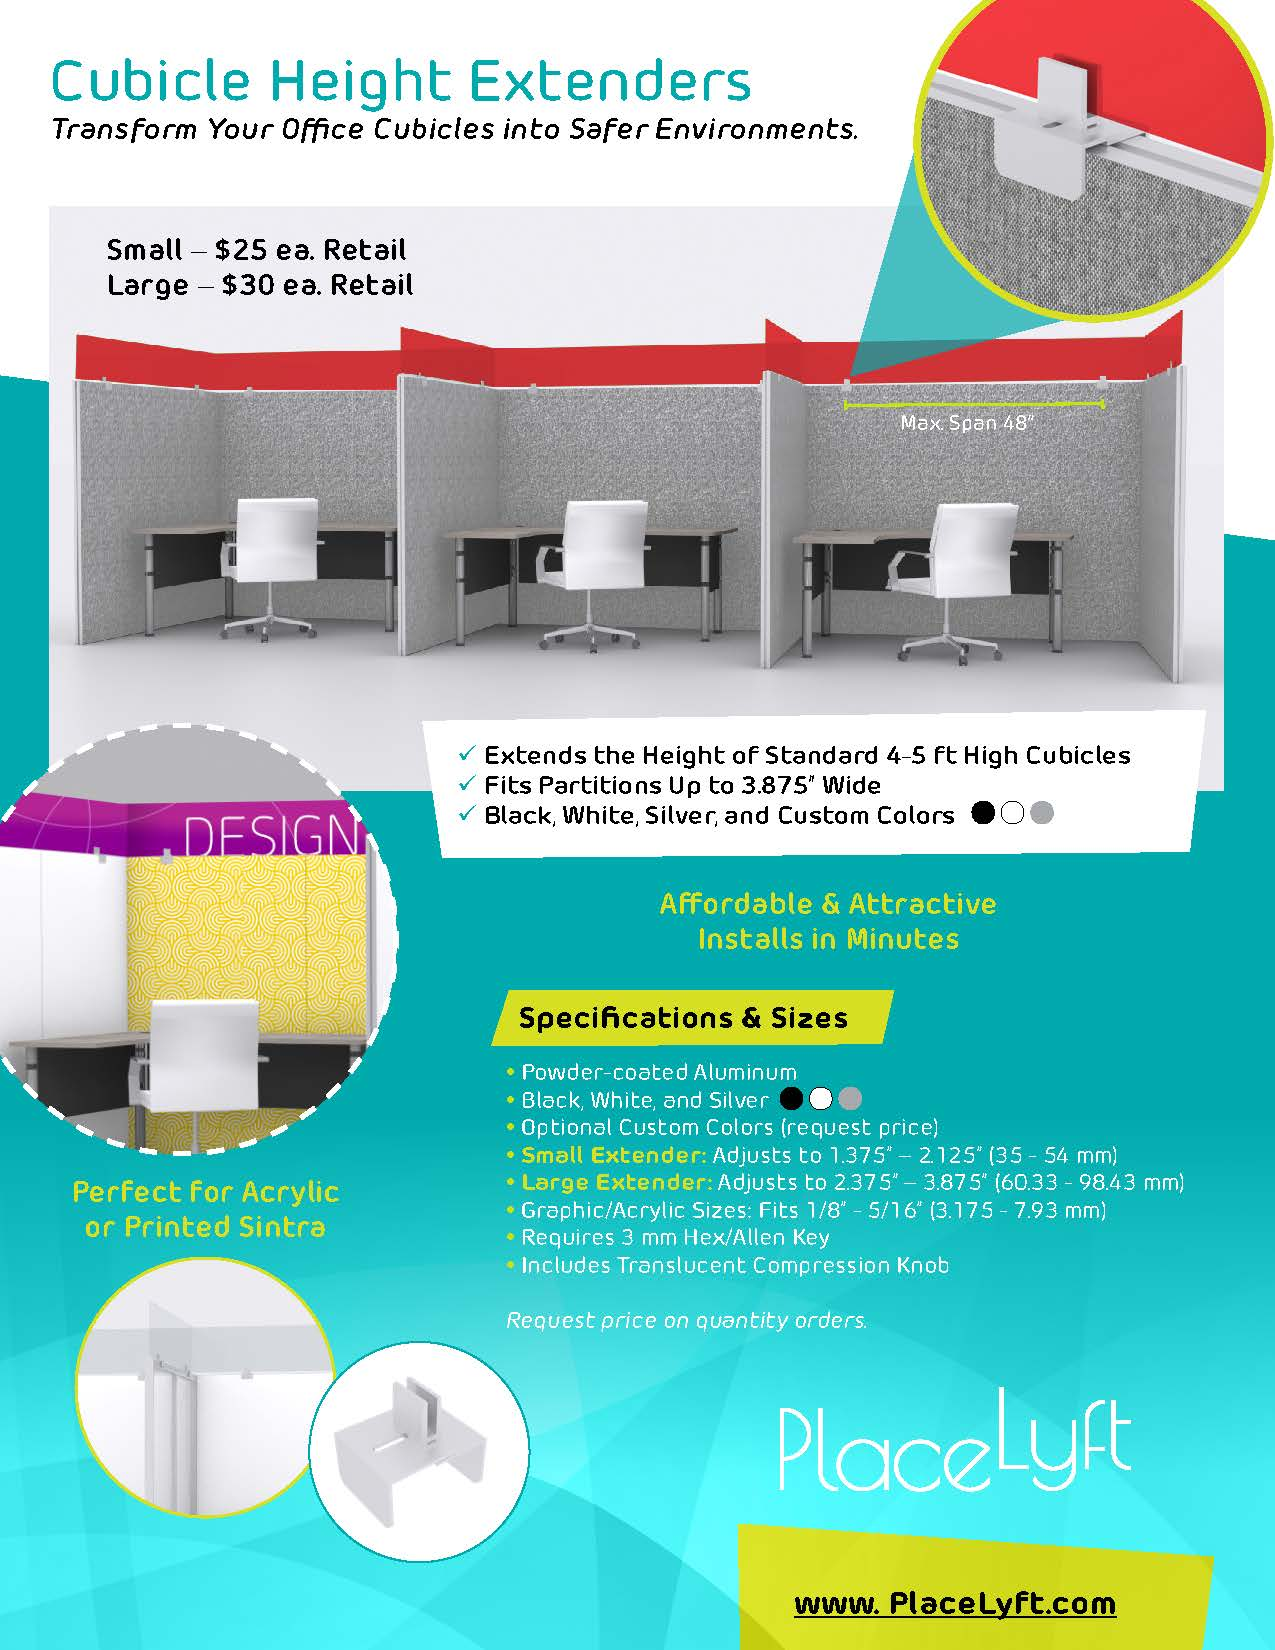 Cubicle Height Extenders